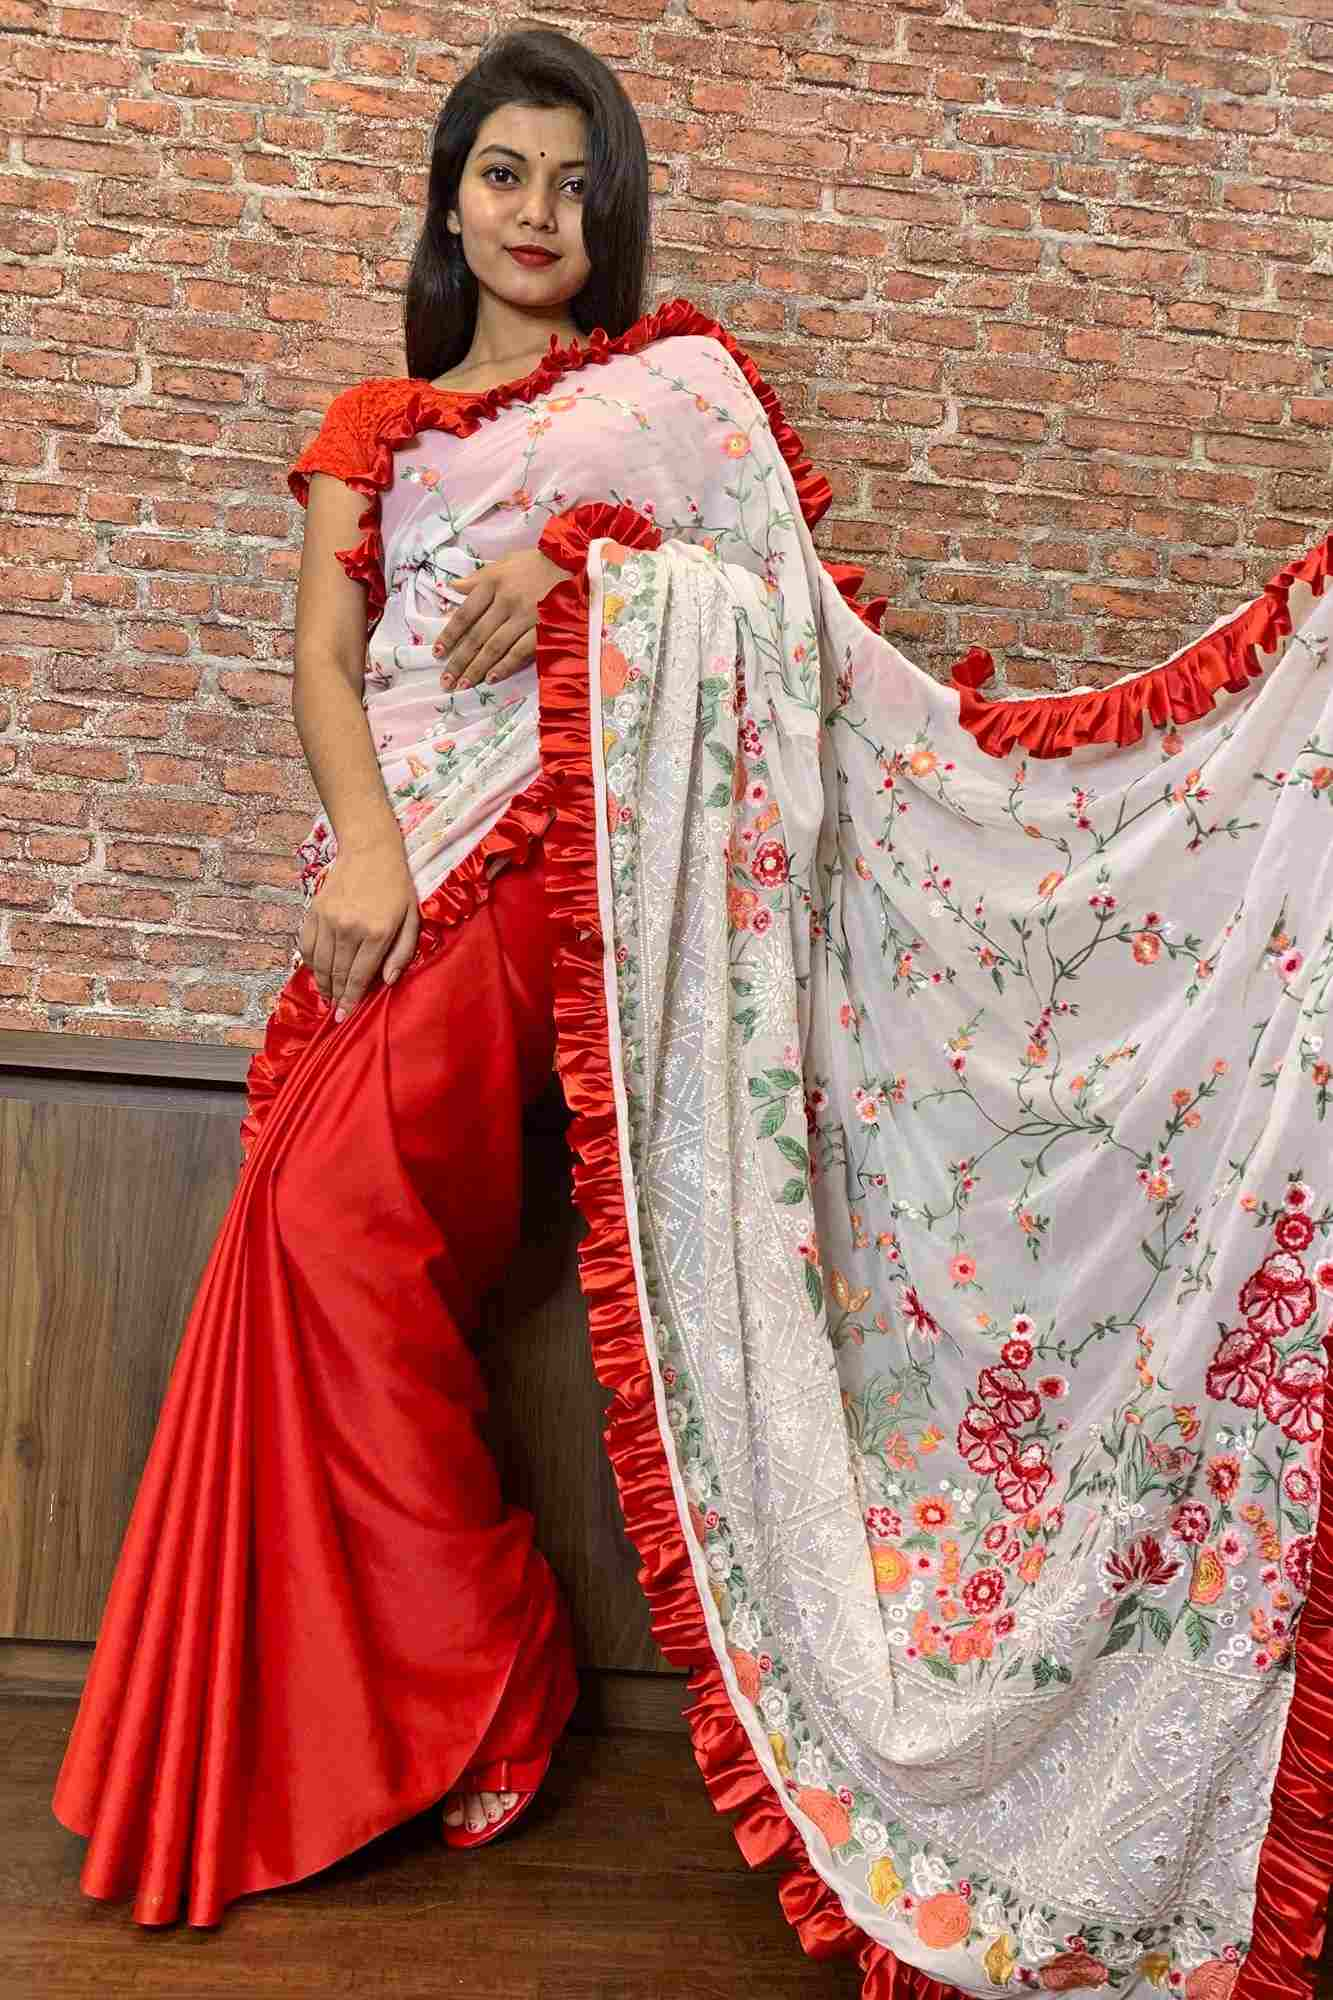 Embroidered pallu with ruffles & satin pleats wrap in 1 minute saree